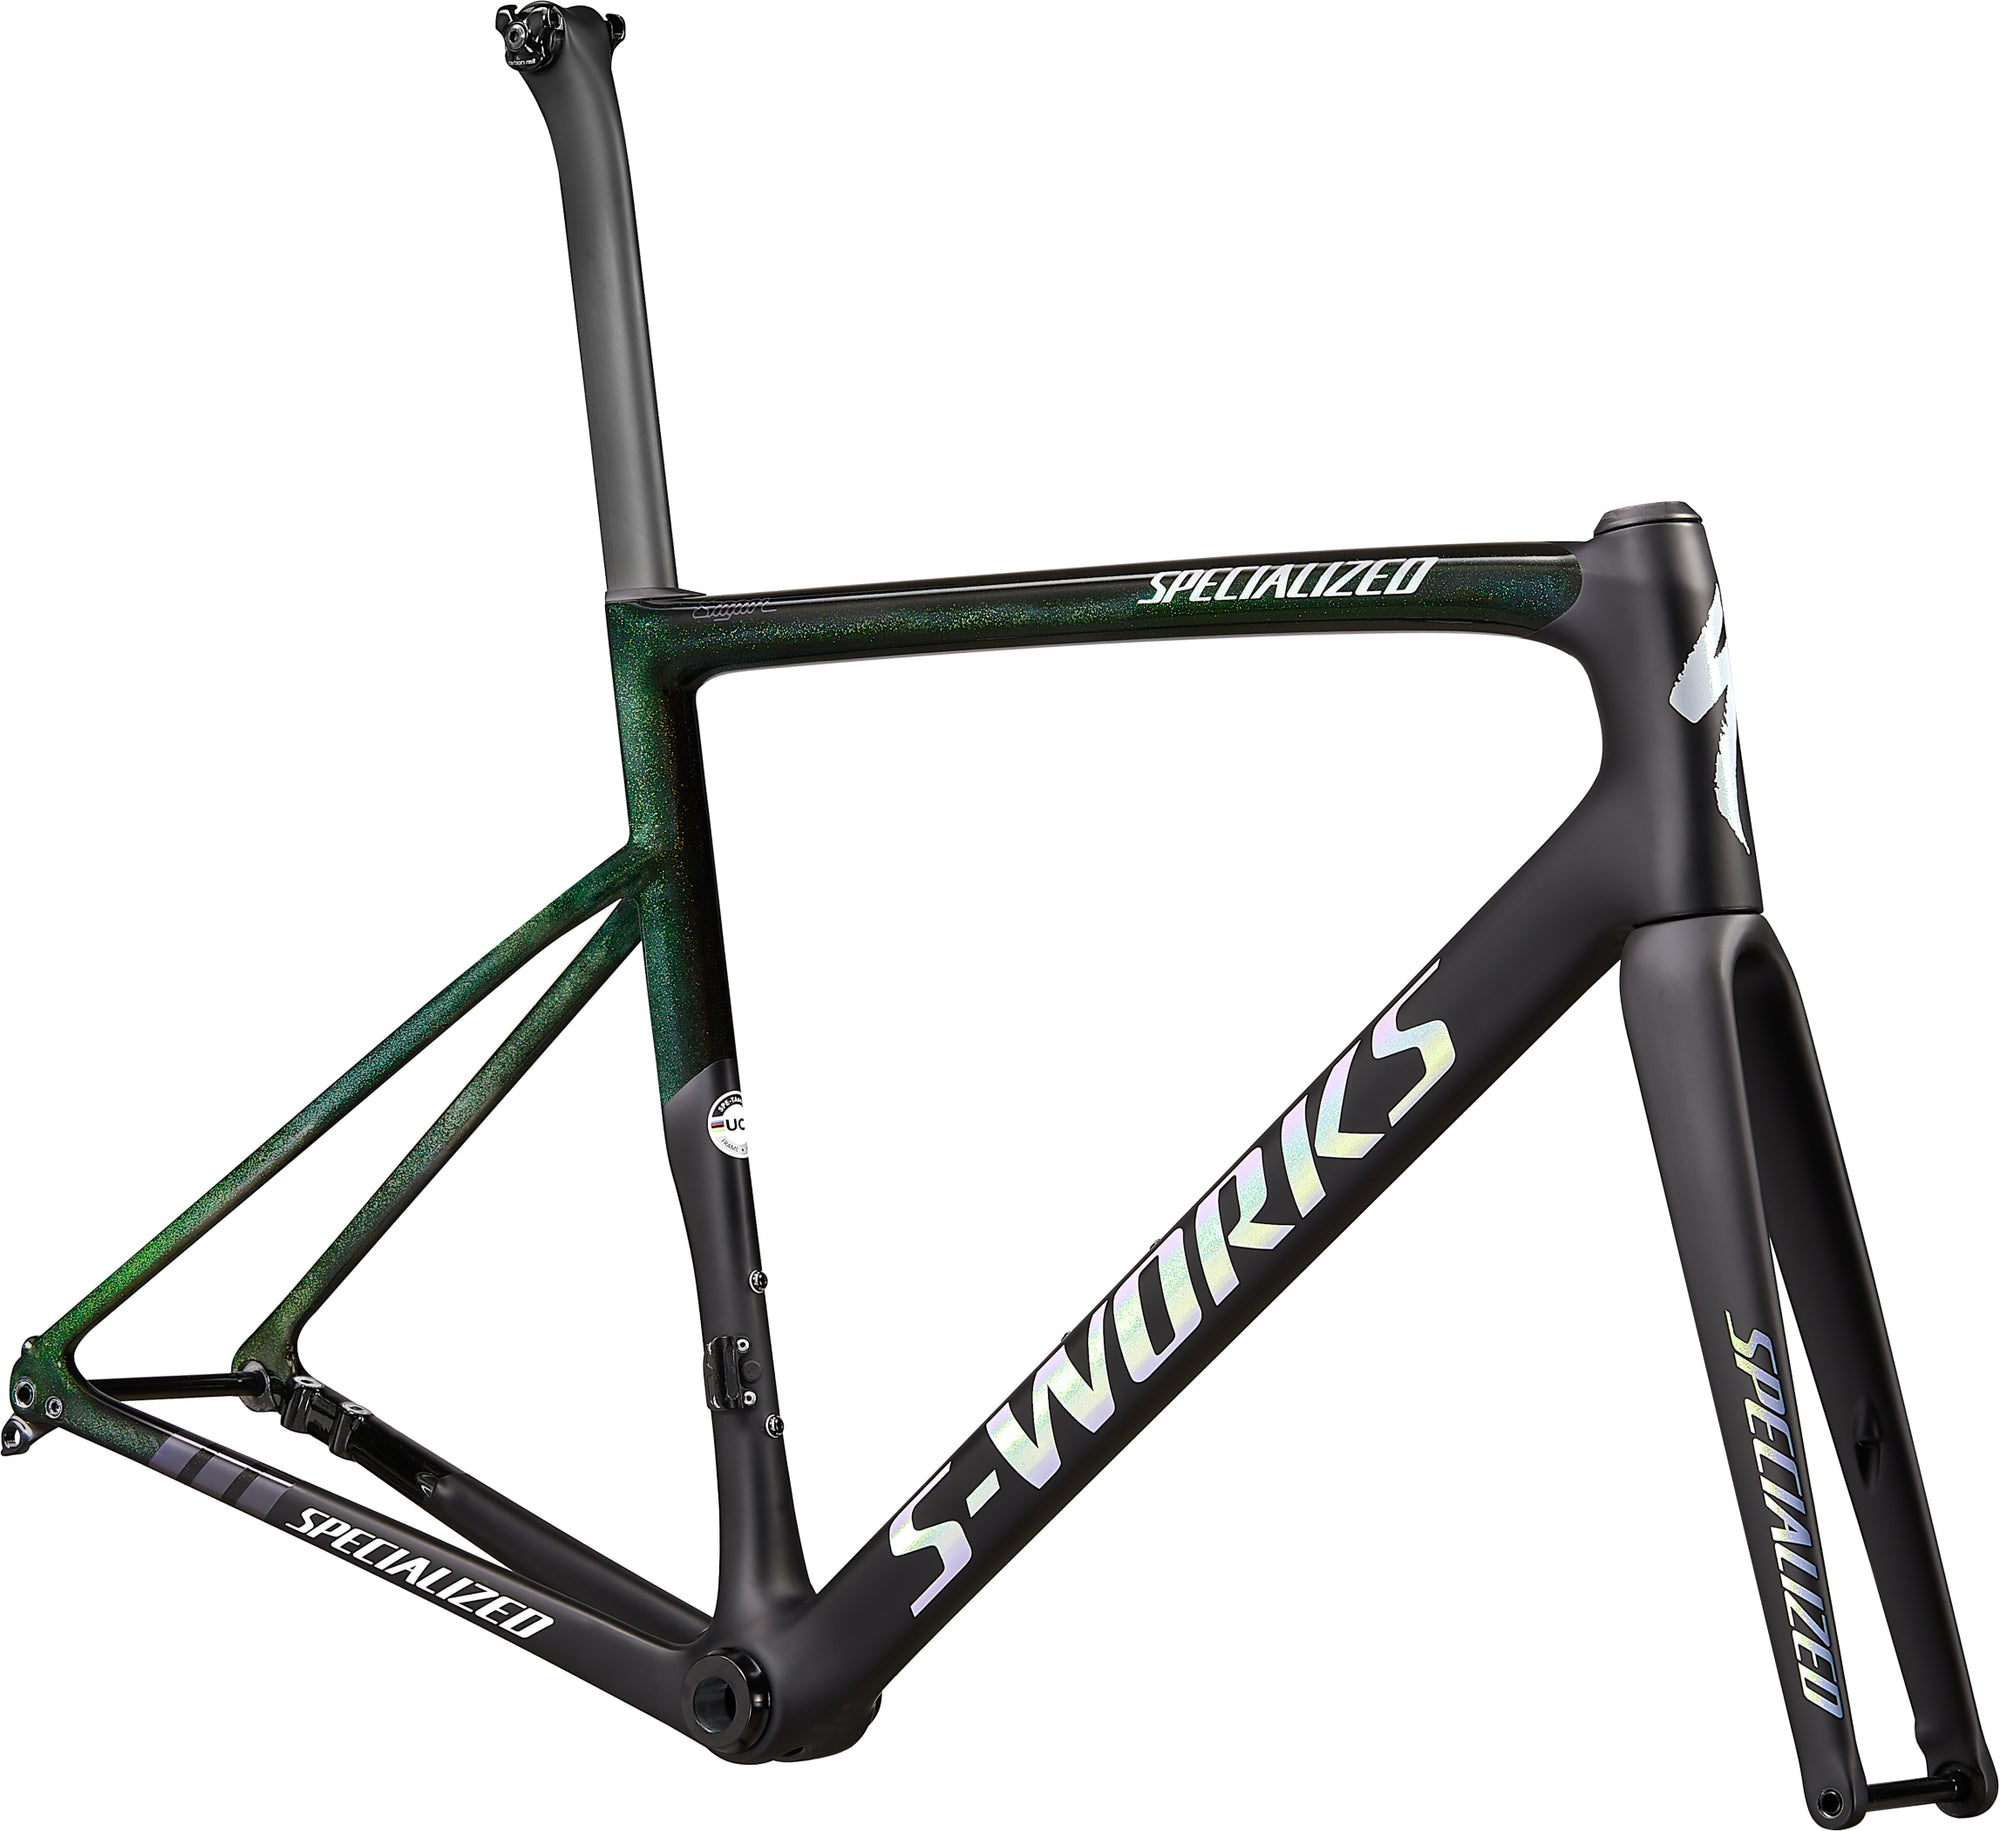 S-Works Tarmac SL6 Frameset - Sagan Collection Deconstructivism